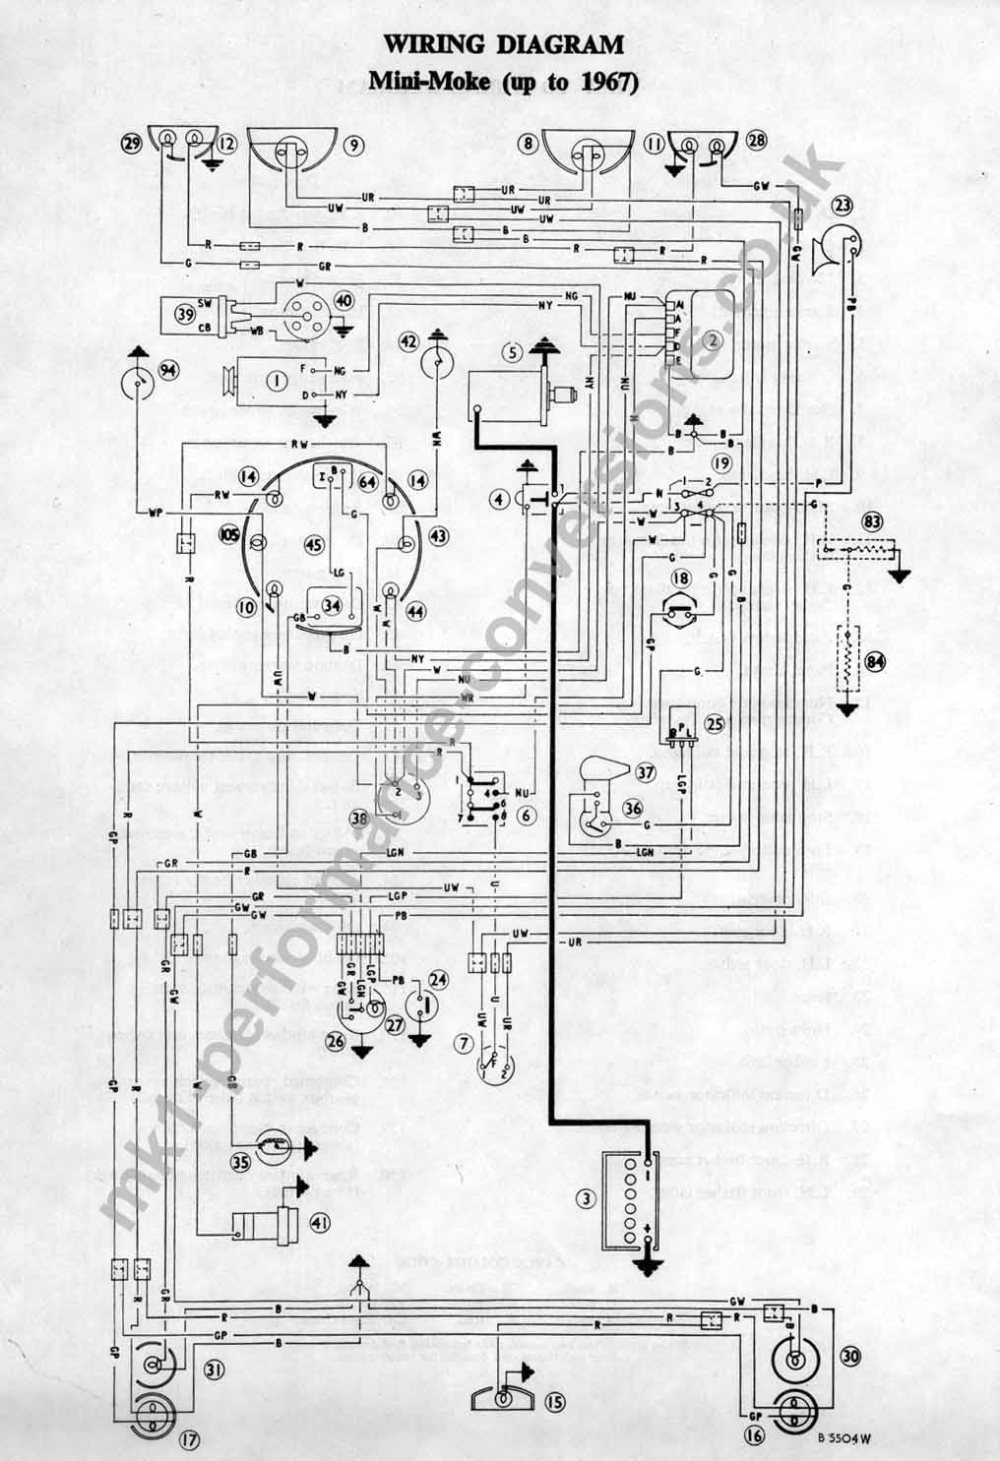 medium resolution of classic mini dodge charger wiring schematic 1967 mini wiring diagram